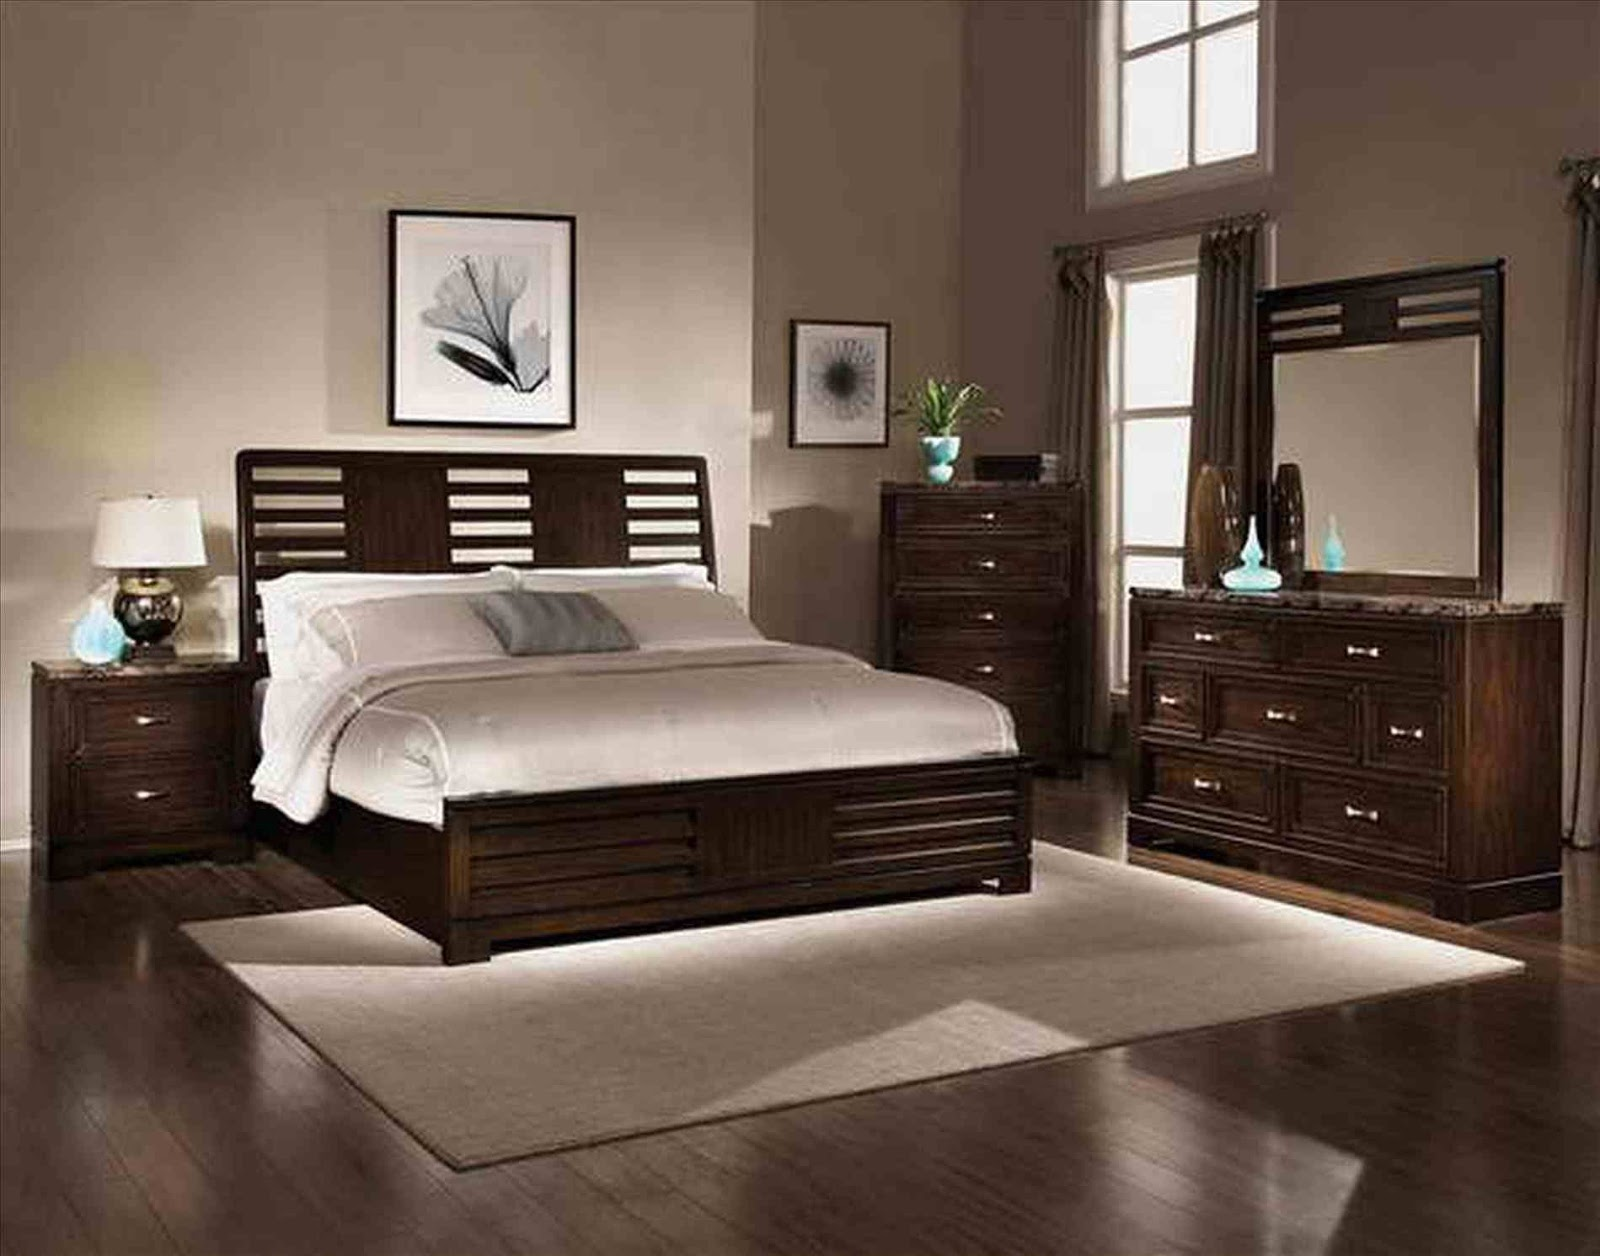 ashley furniture dothan al inspirational simple mens bedroom ideas bedroom decor image of ashley furniture dothan al